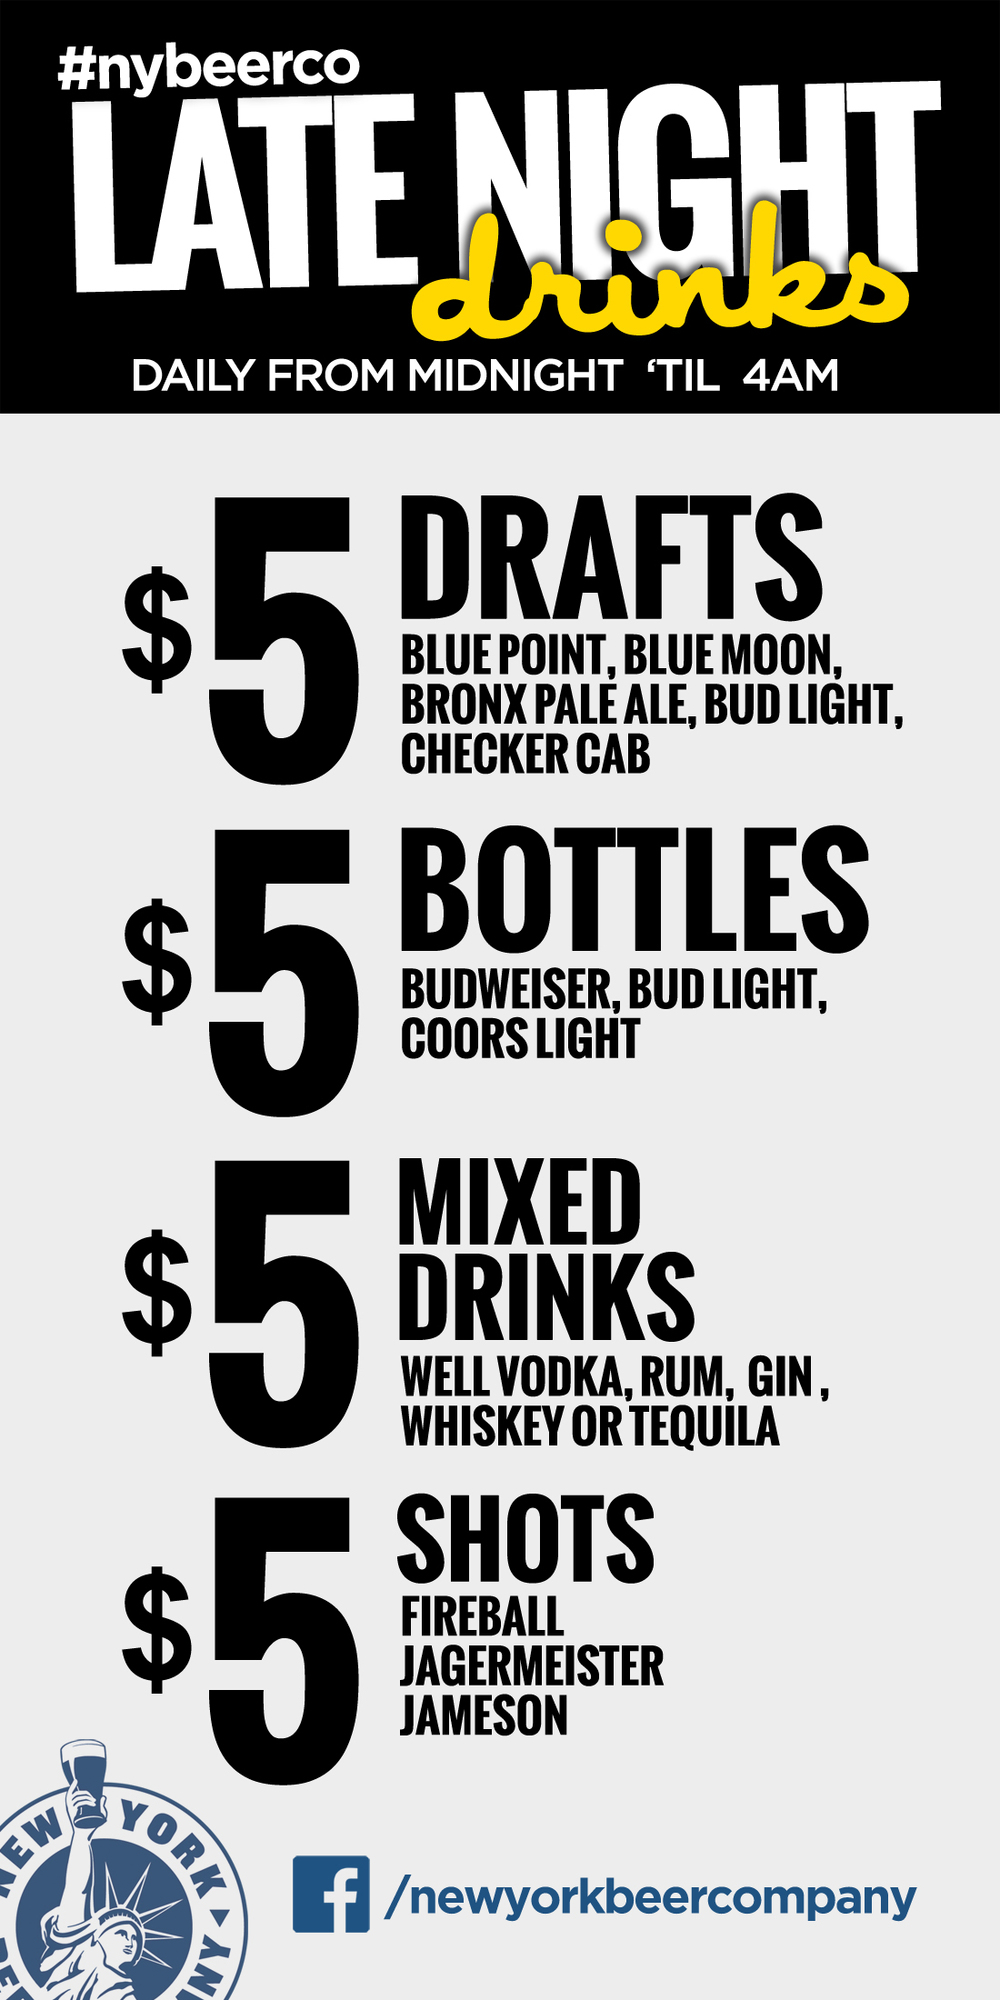 late night drink specials nyc